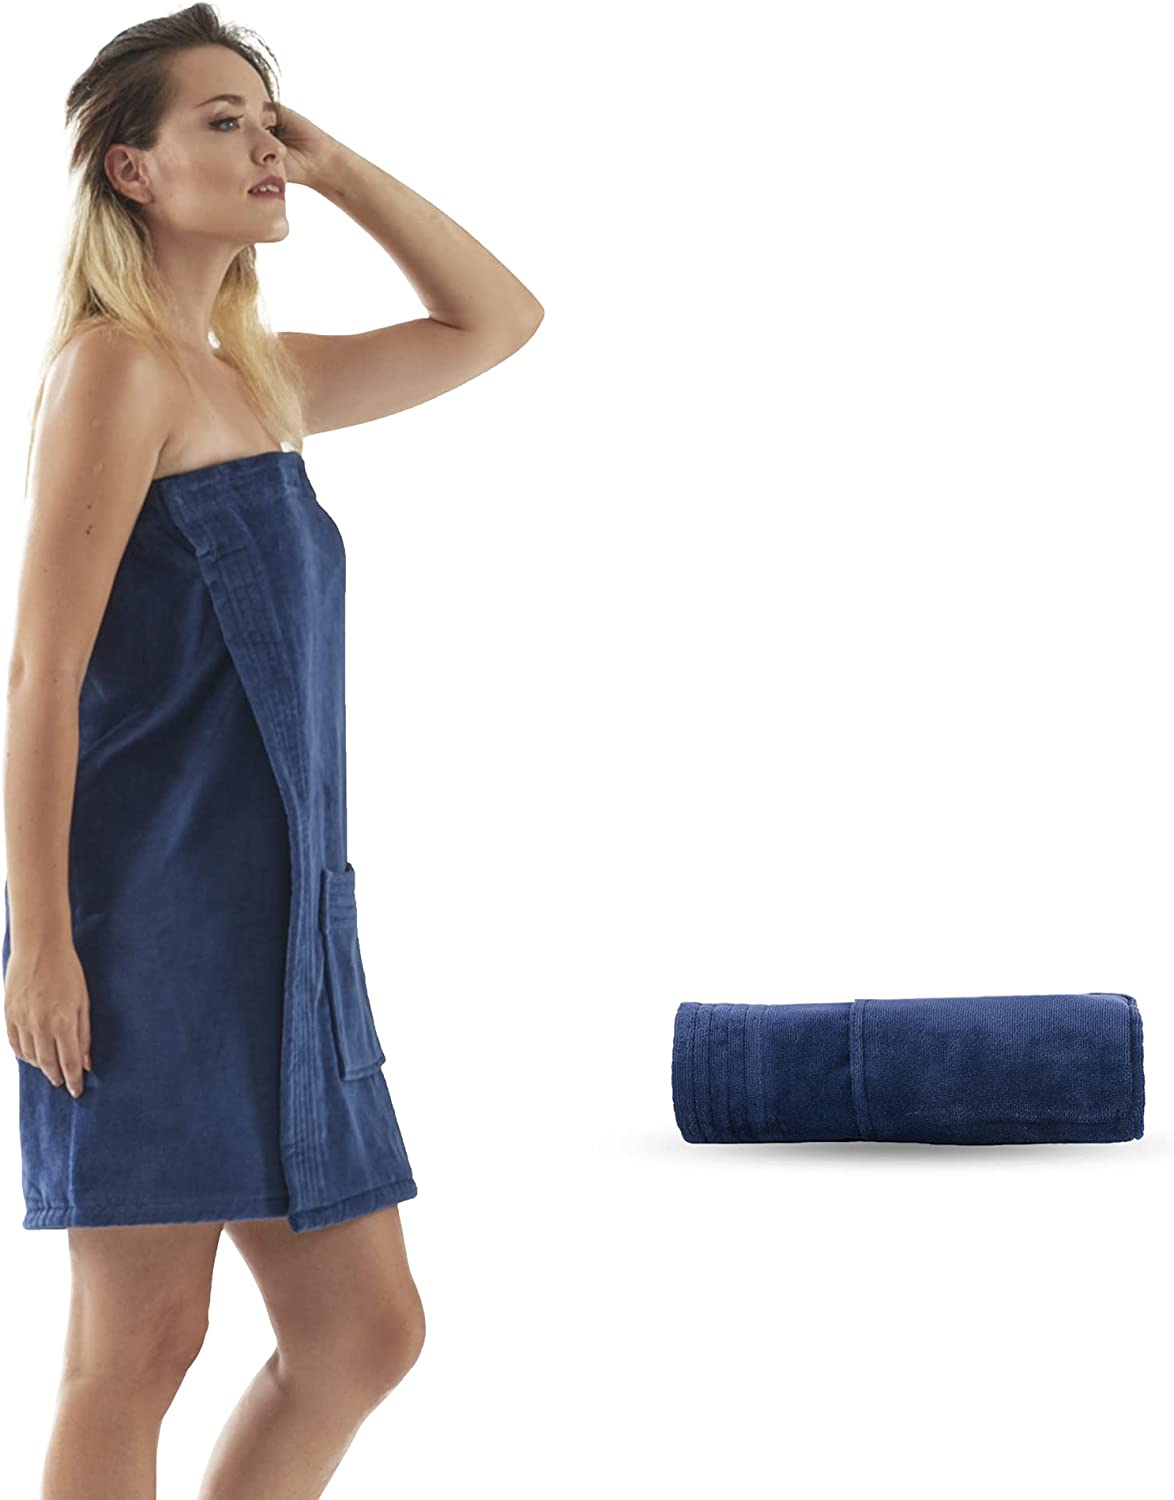 Towel Wrap for Women with Adjustable Fastener Hook and Max 72% OFF Loop 10 Max 78% OFF